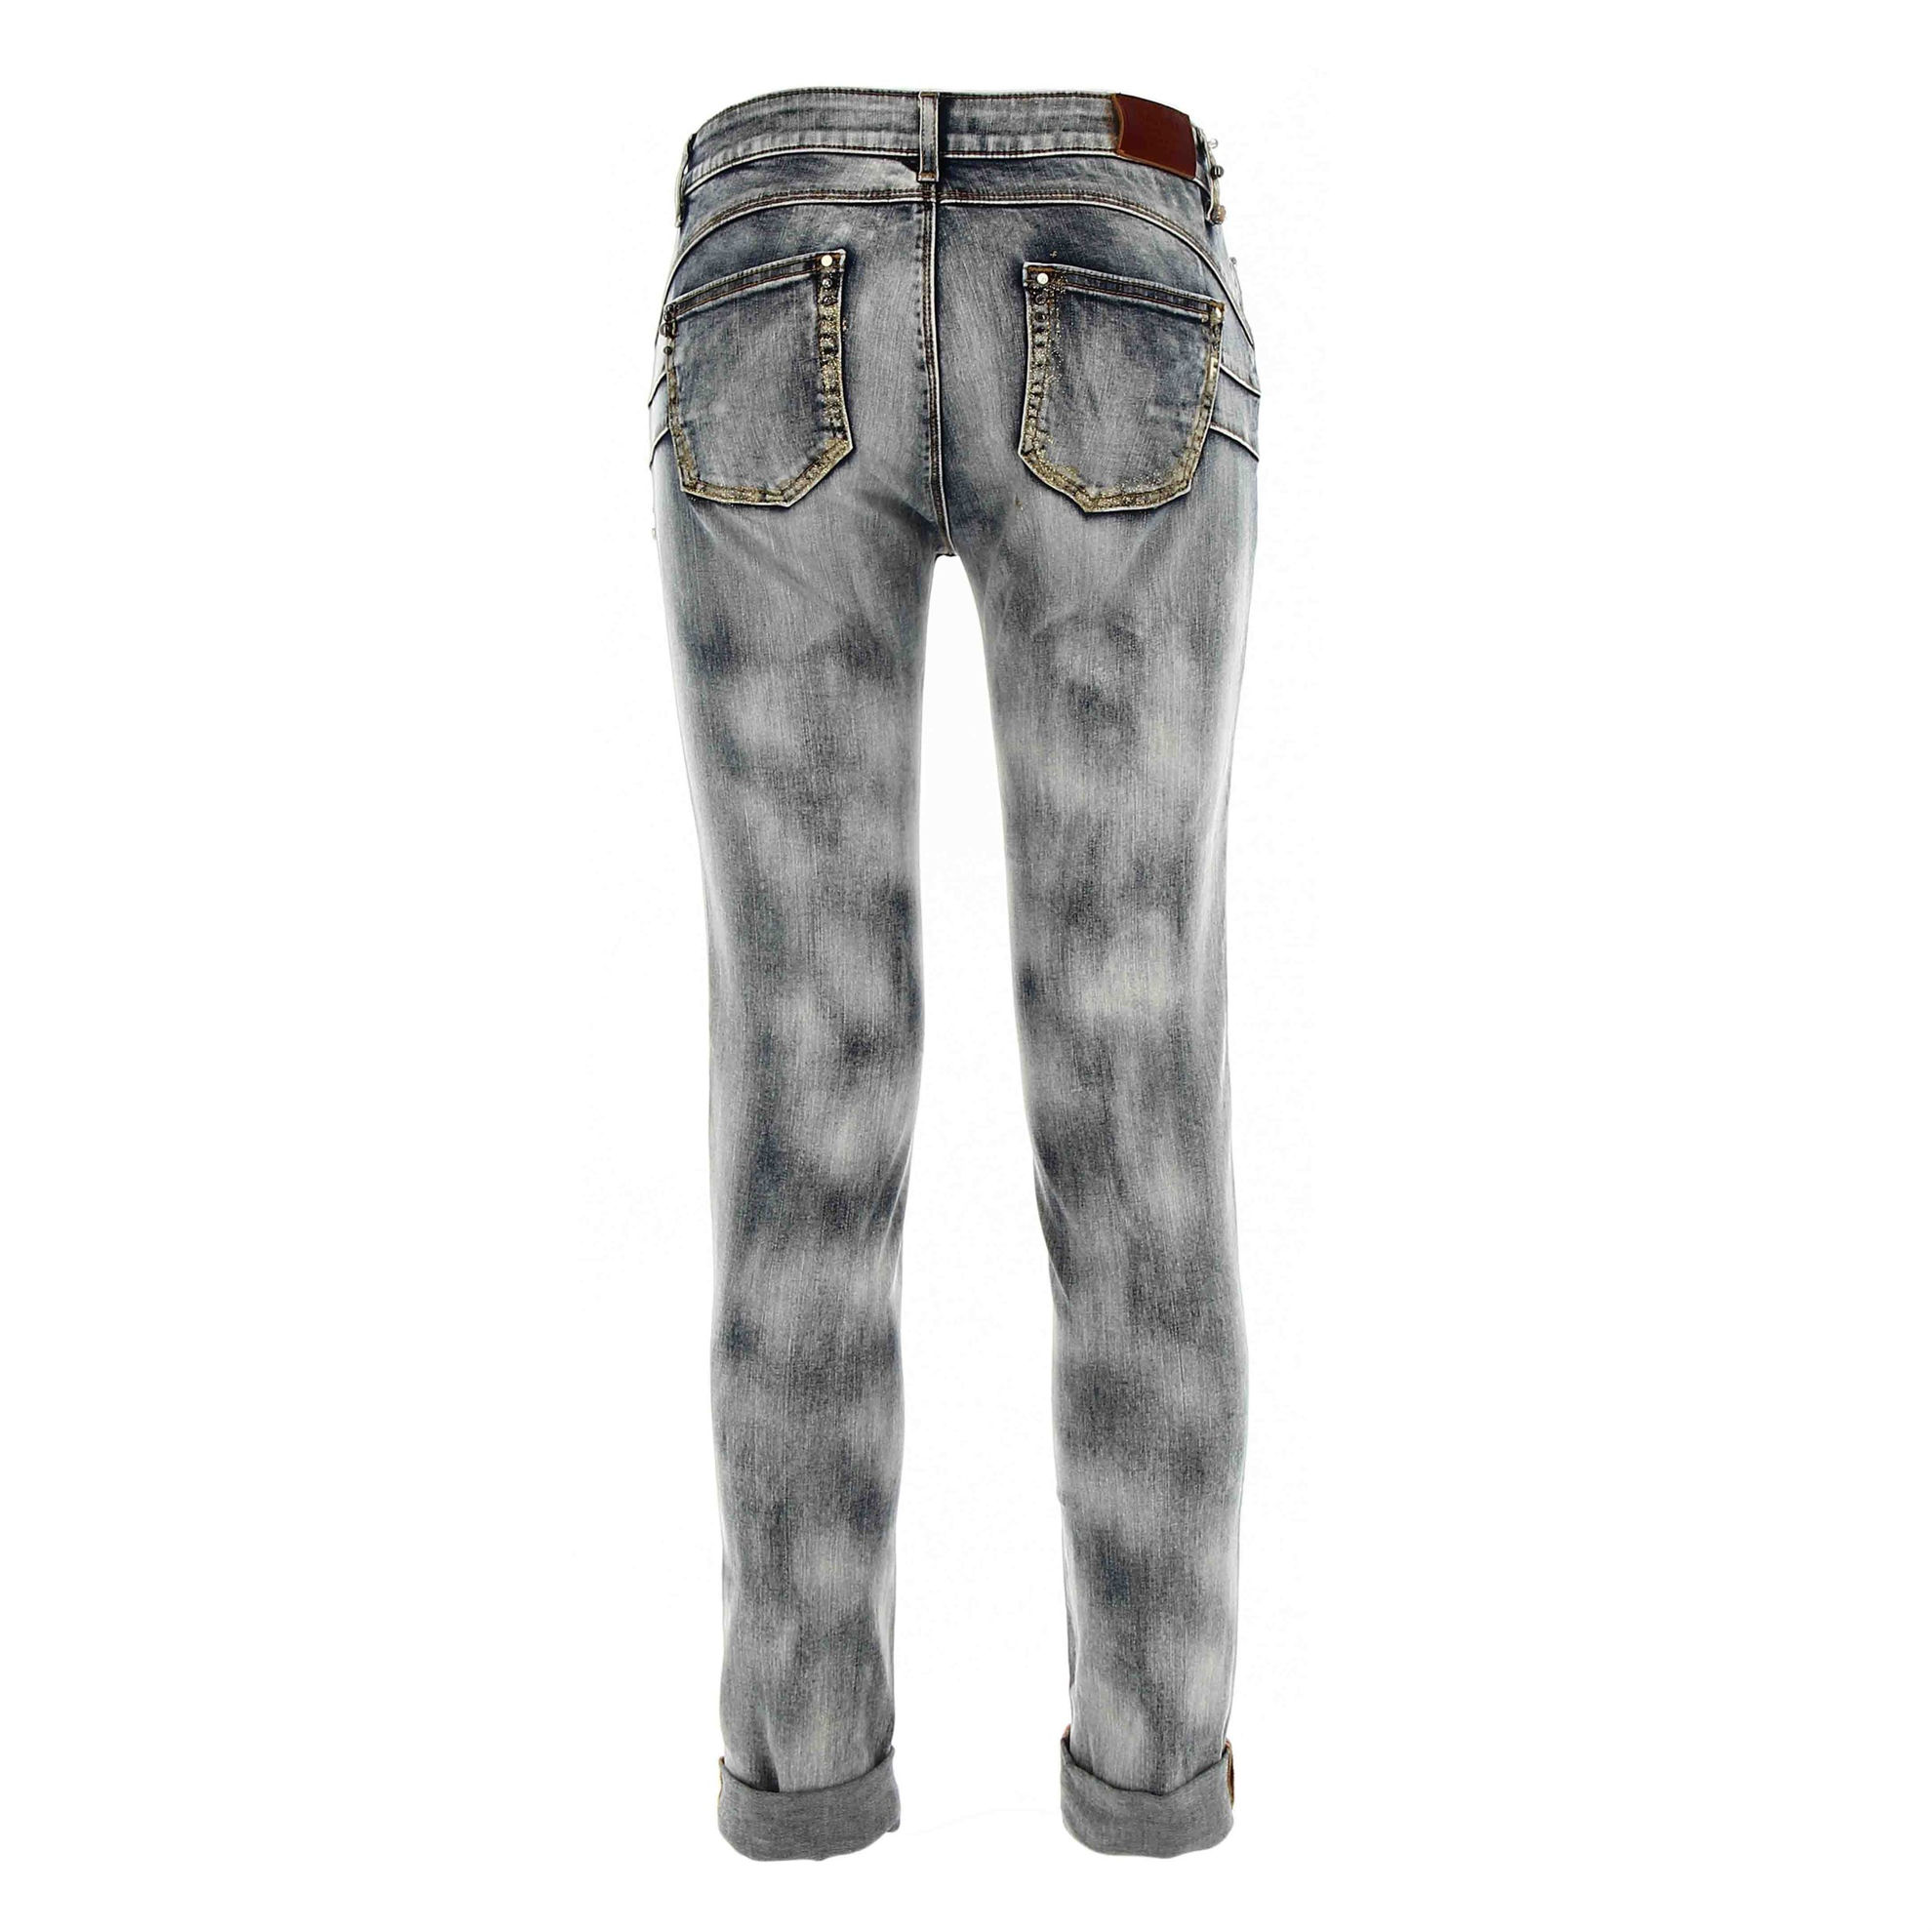 Immagine di JEANS JTINA7 S/UP SKINNY GLITTER DENIM